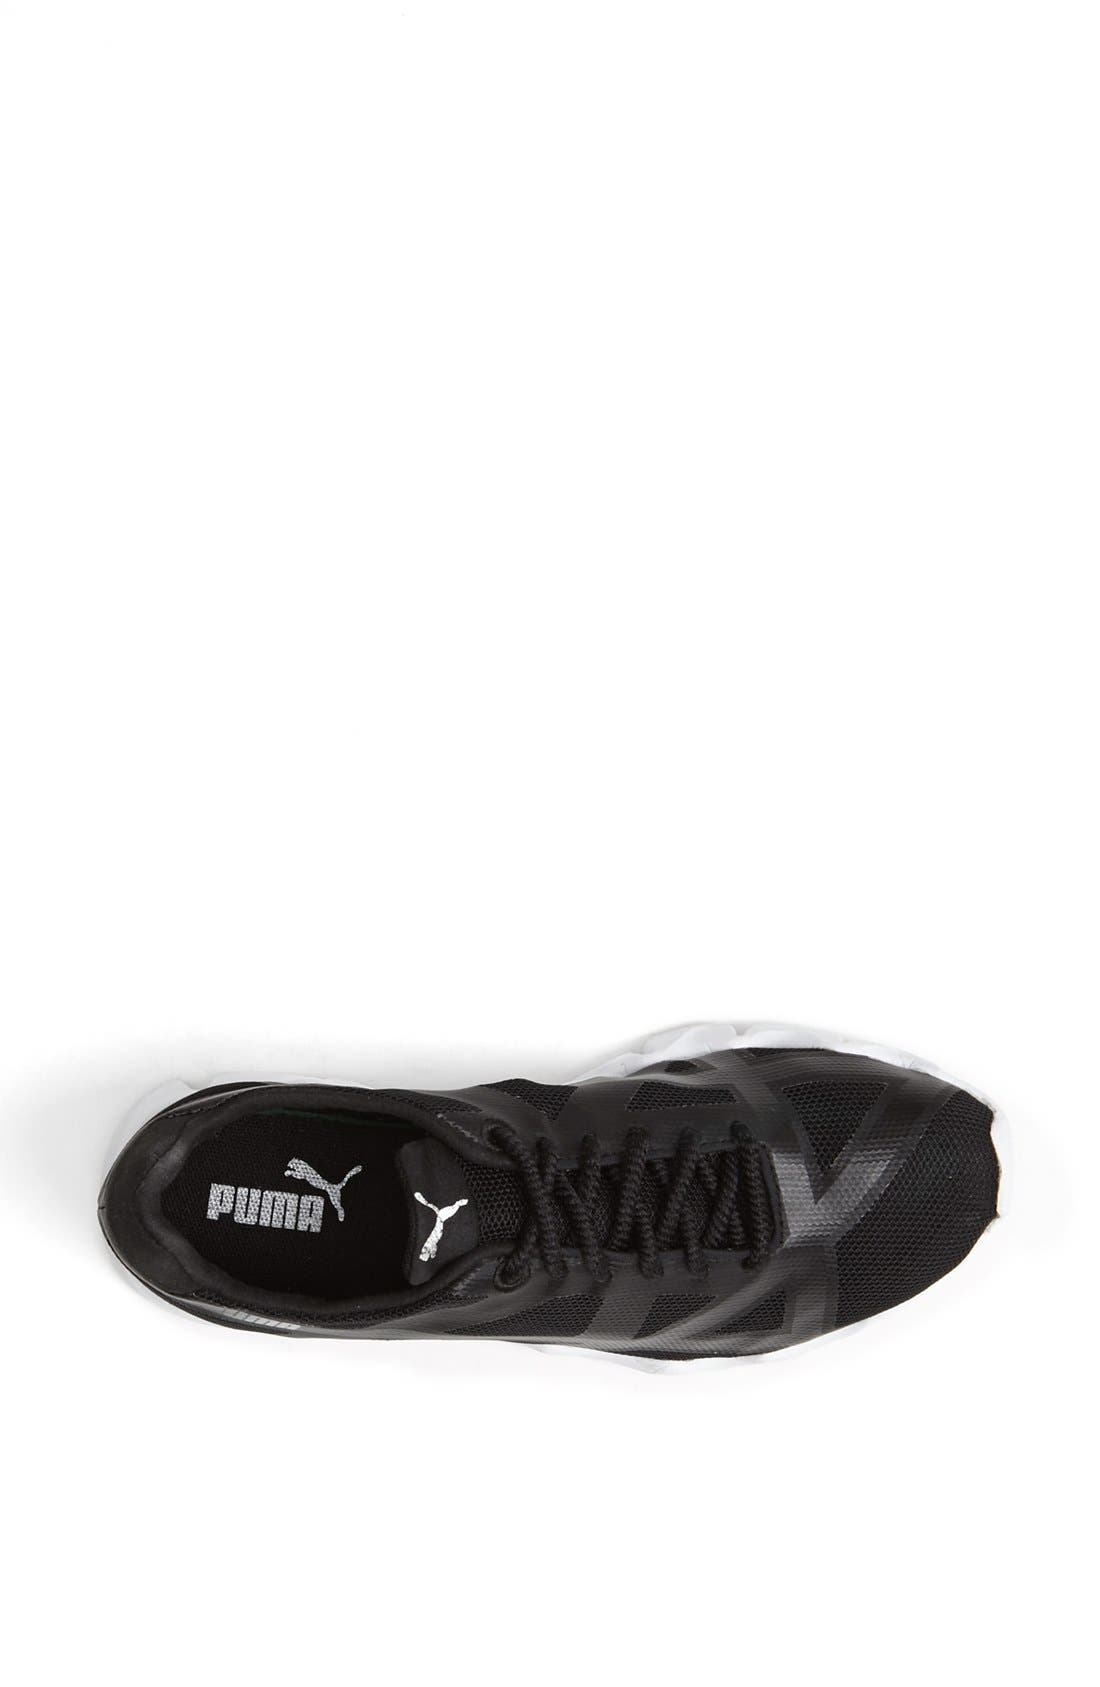 Alternate Image 3  - PUMA 'Axel' Sneaker (Women)